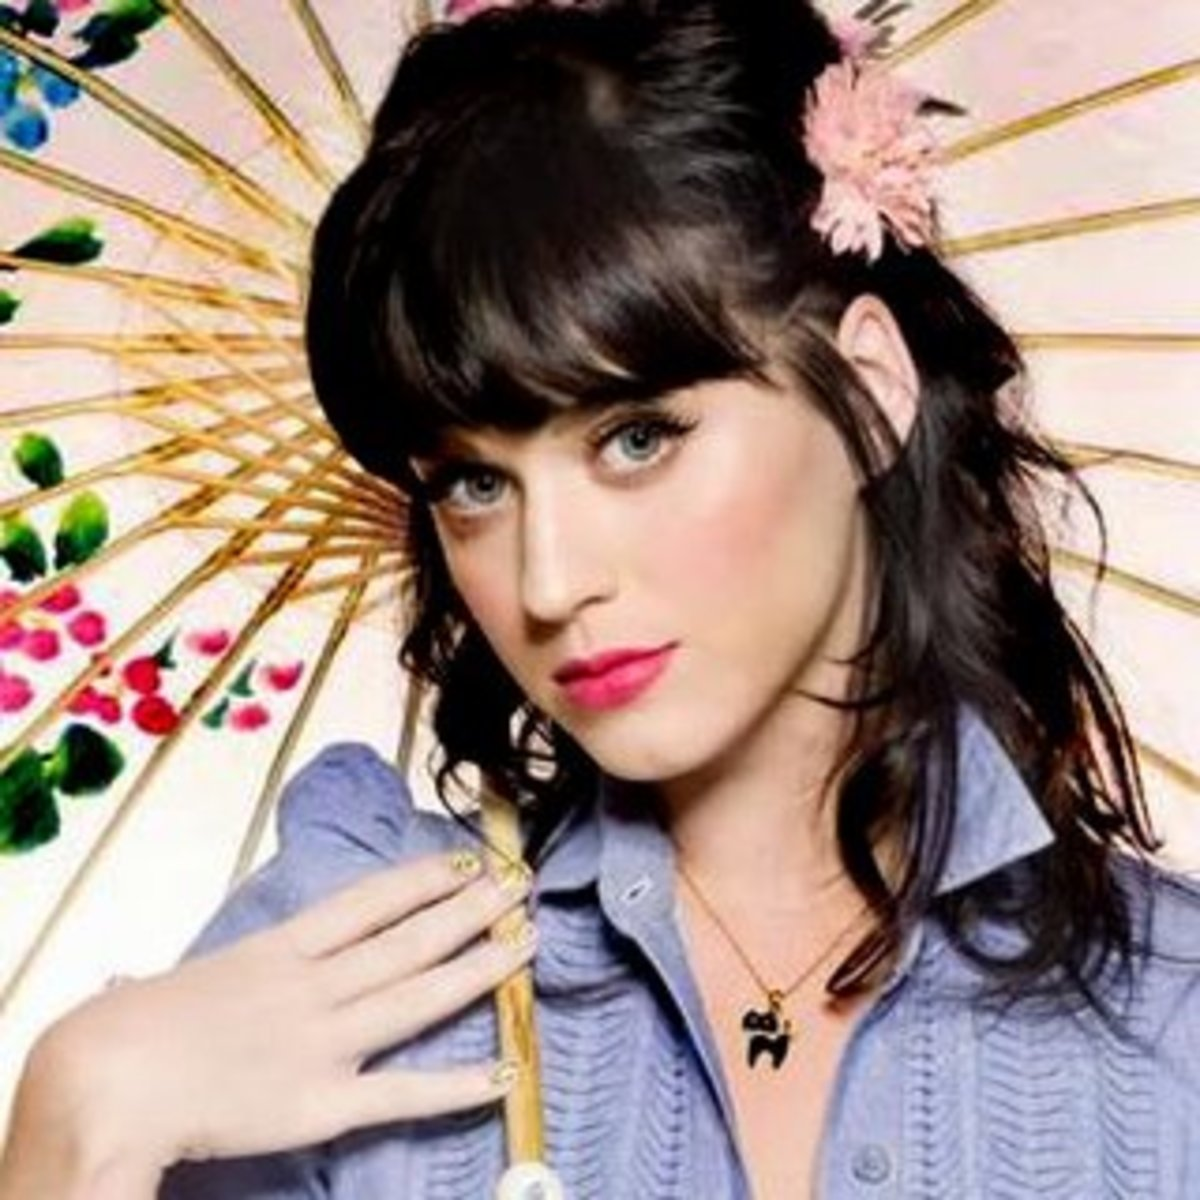 1. Katy Perry. I really like her. She's very pretty and flexible in any role she took.